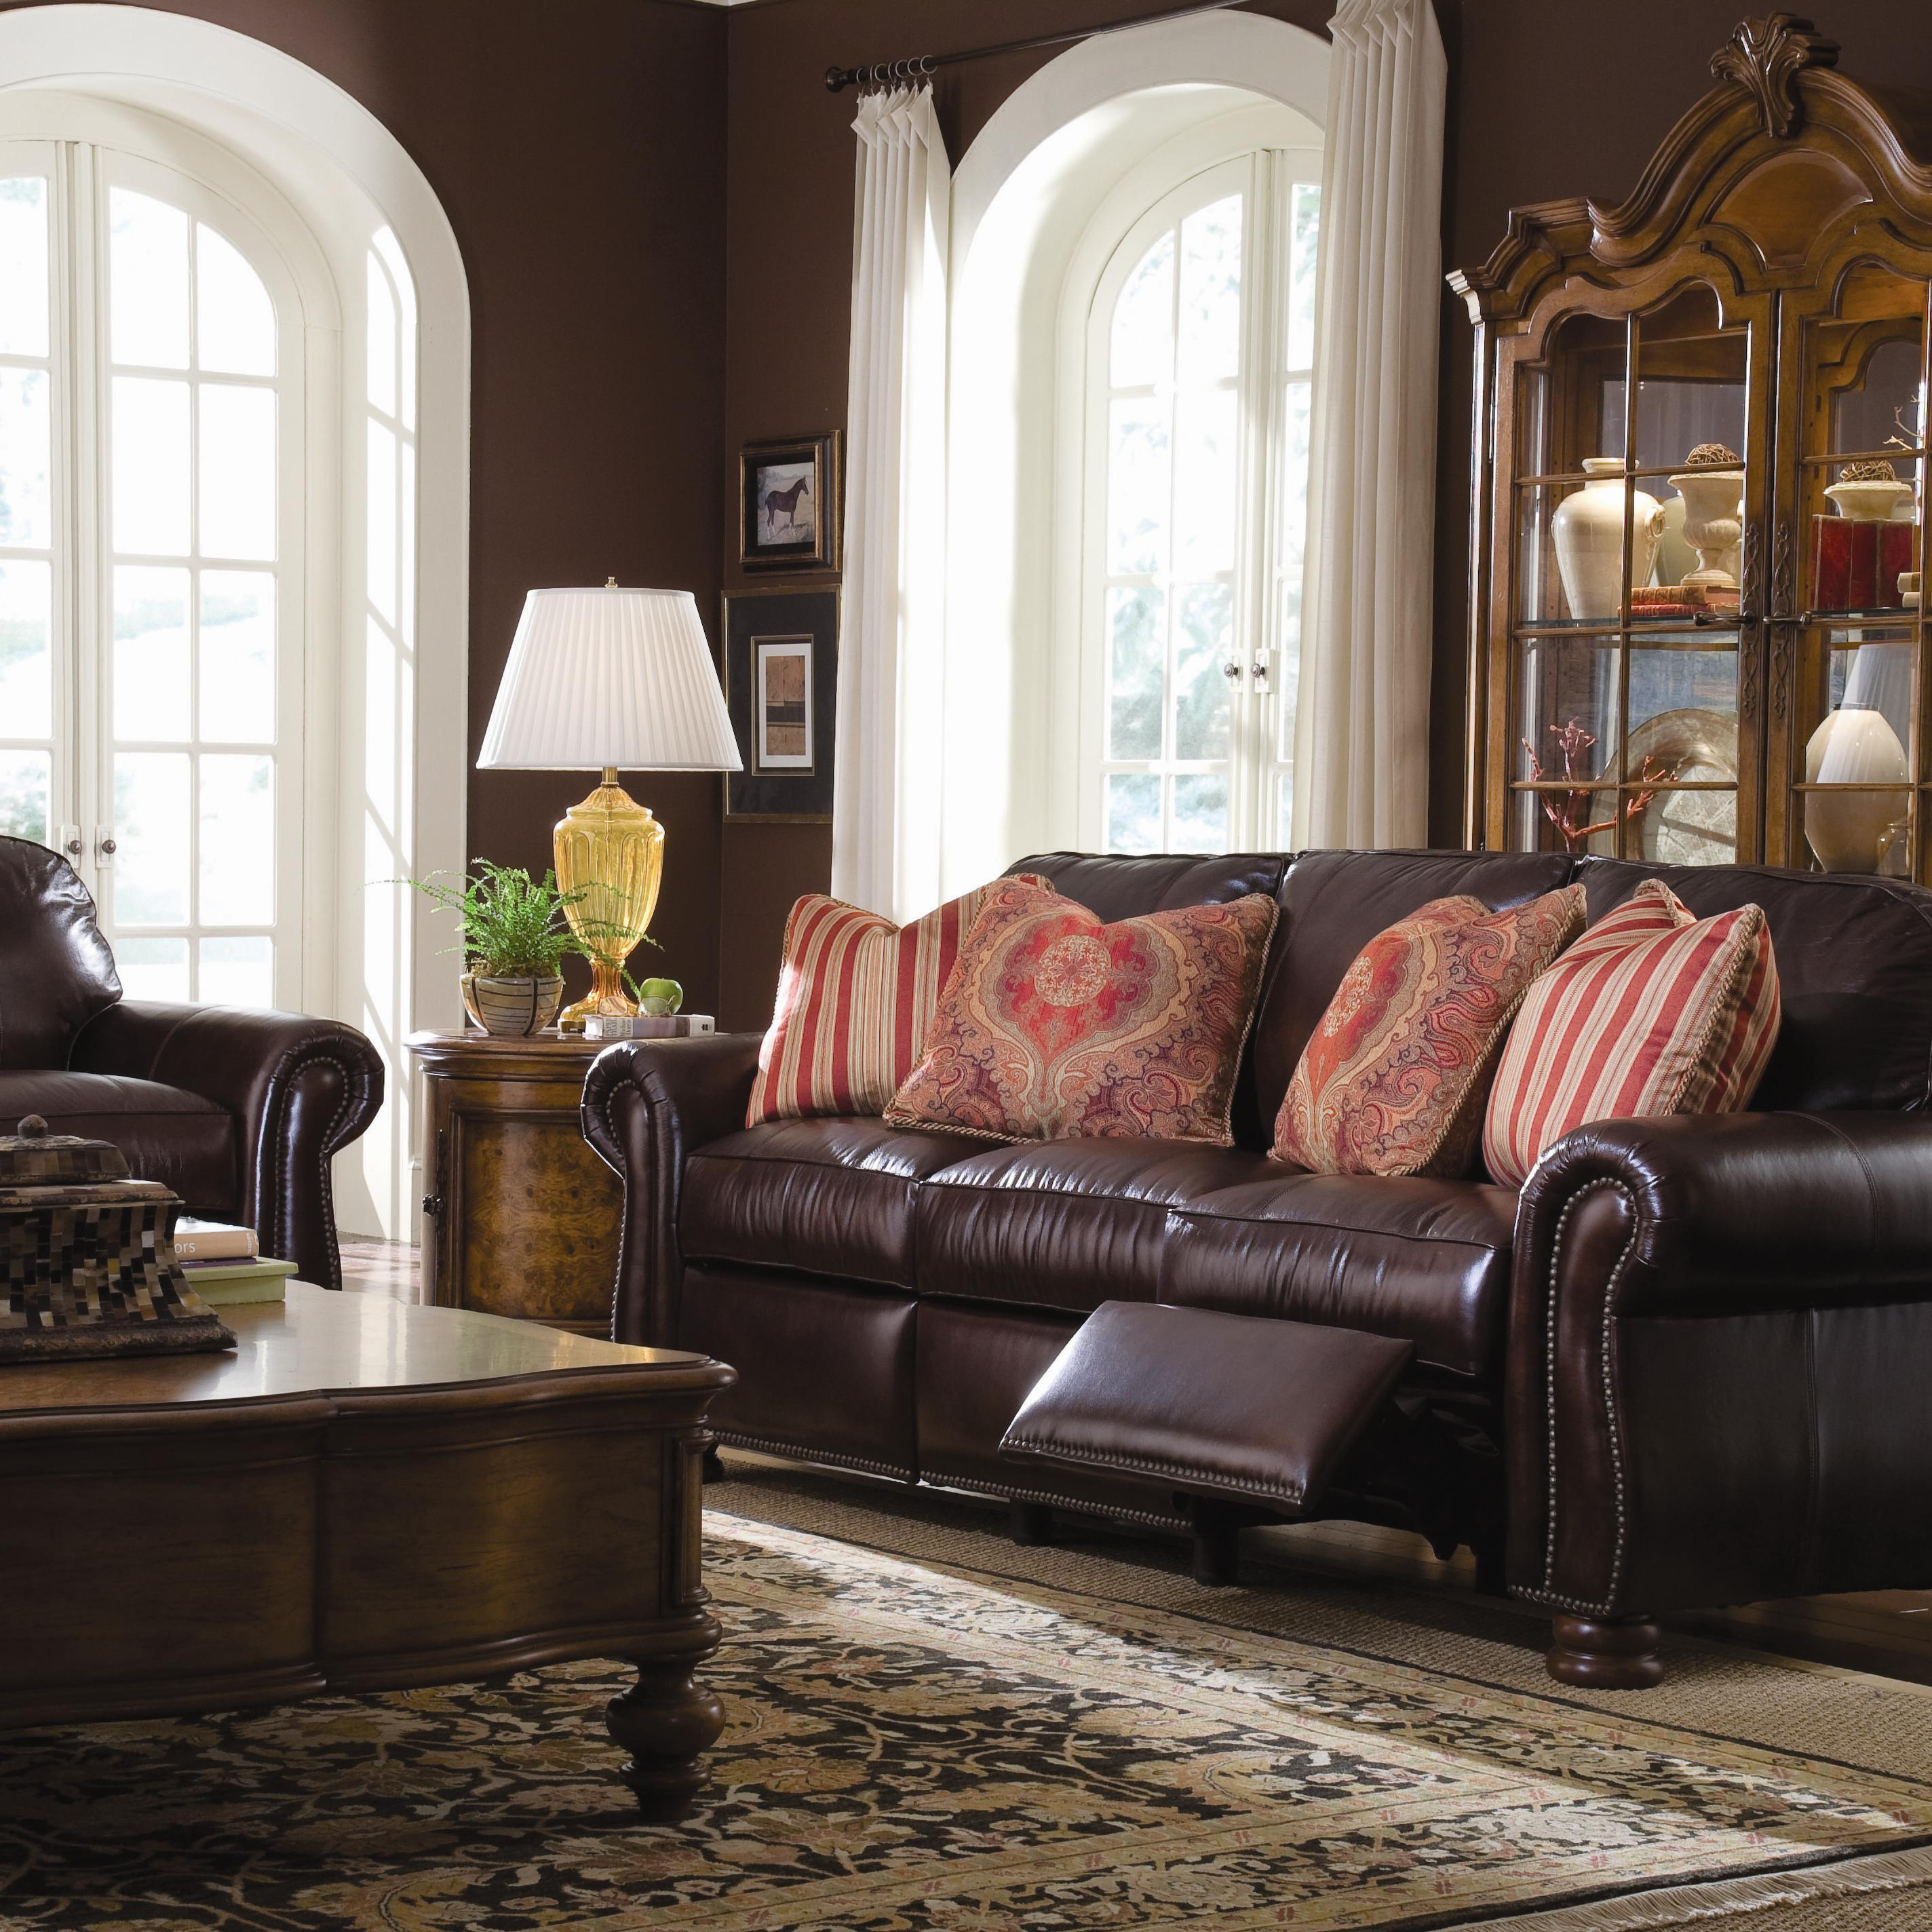 jonathan louis benjamin sectional sofa linen corner nz chesterfield leather 2 person brown